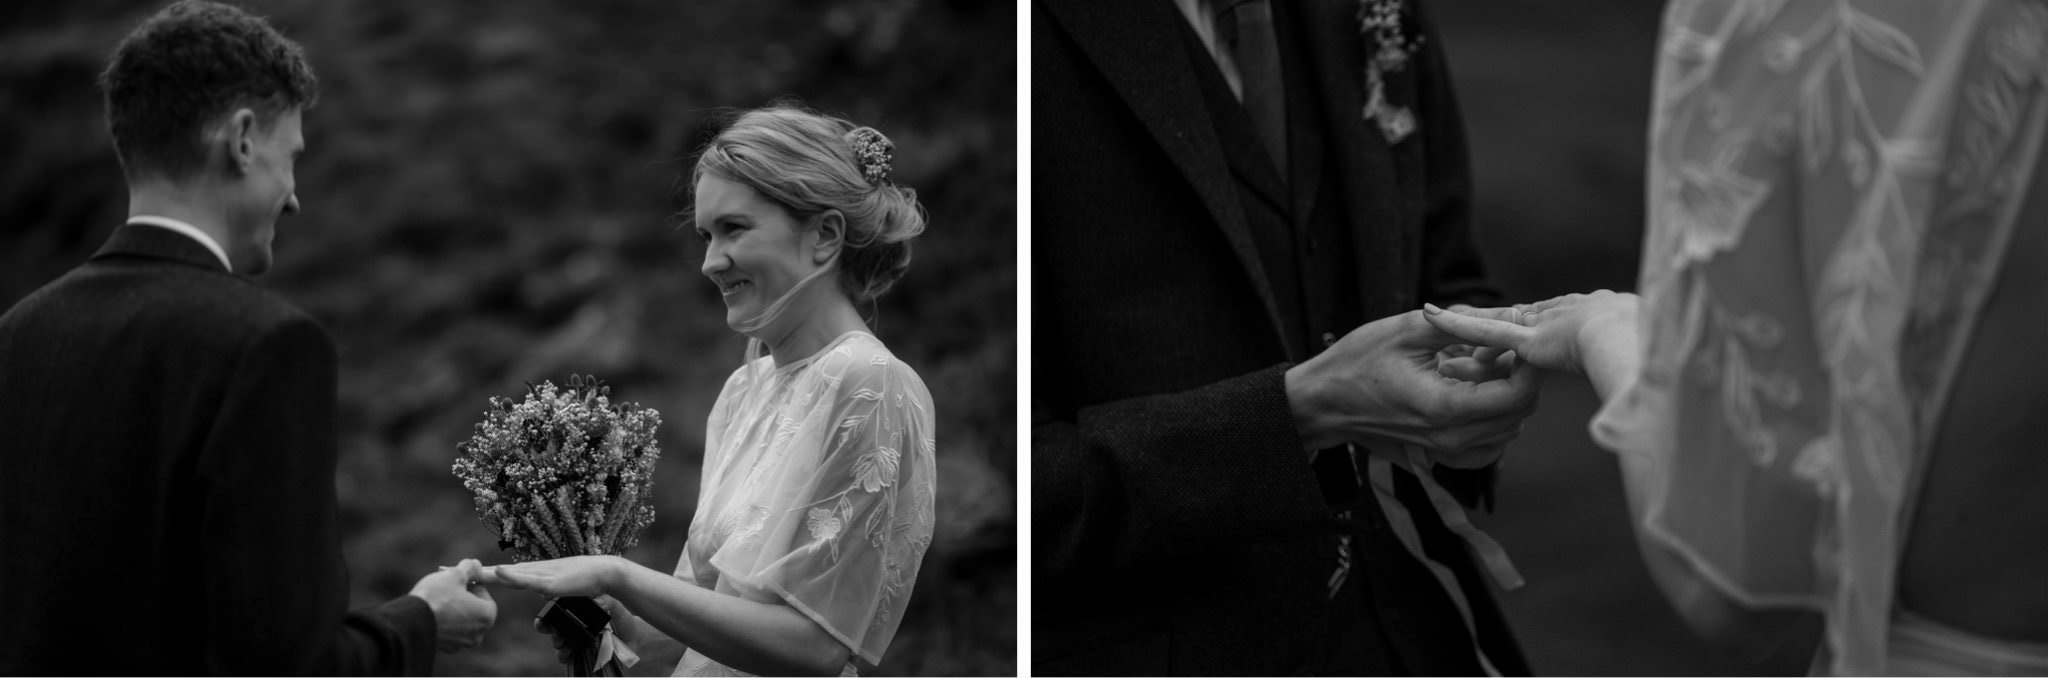 Bride and groom exchange rings during a Scottish elopement wedding ceremony in Glencoe